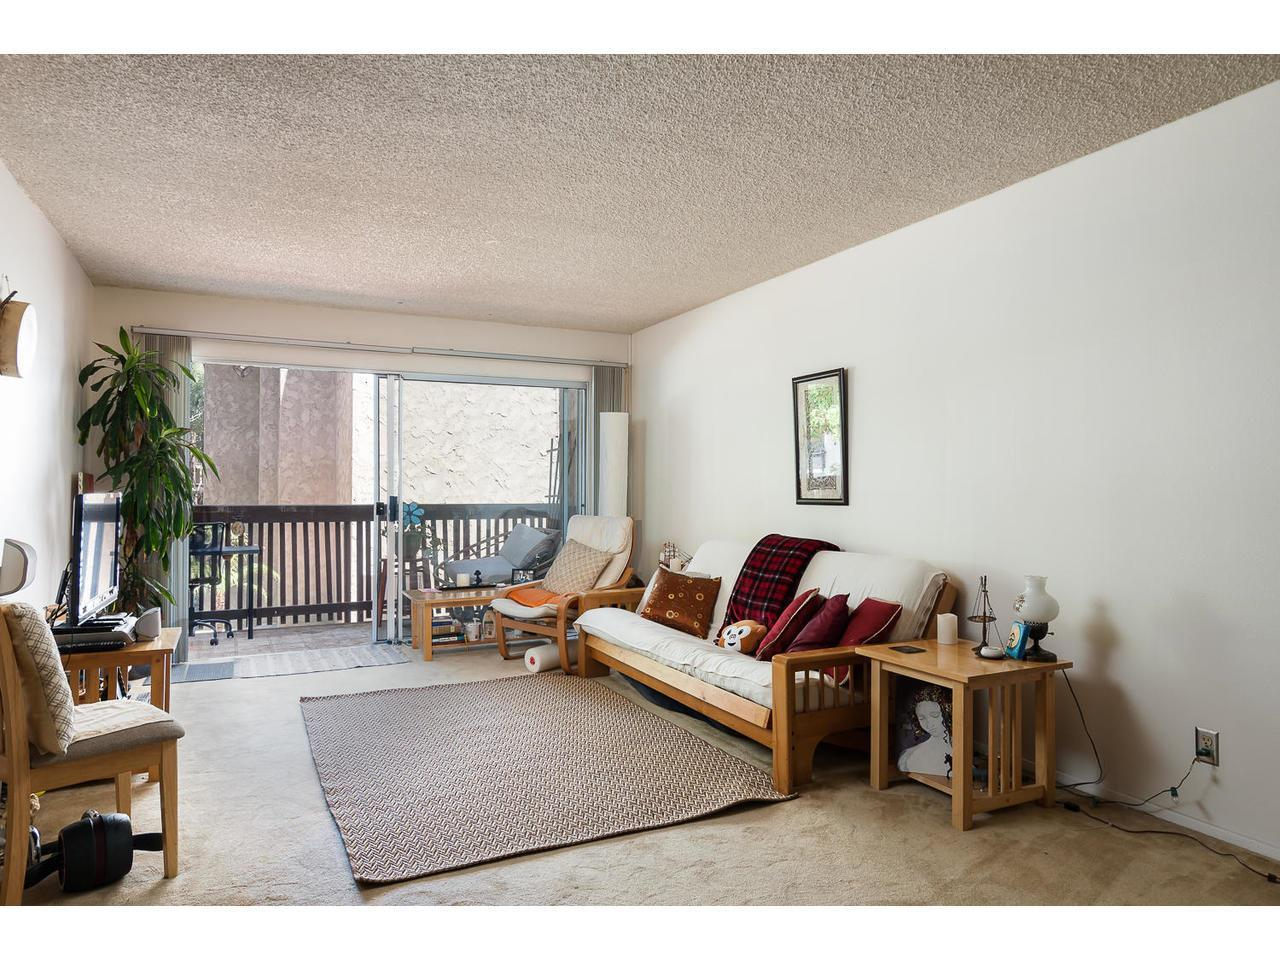 6202 Friars Rd #221, San Diego, CA 92108 - Estimate and Home Details ...